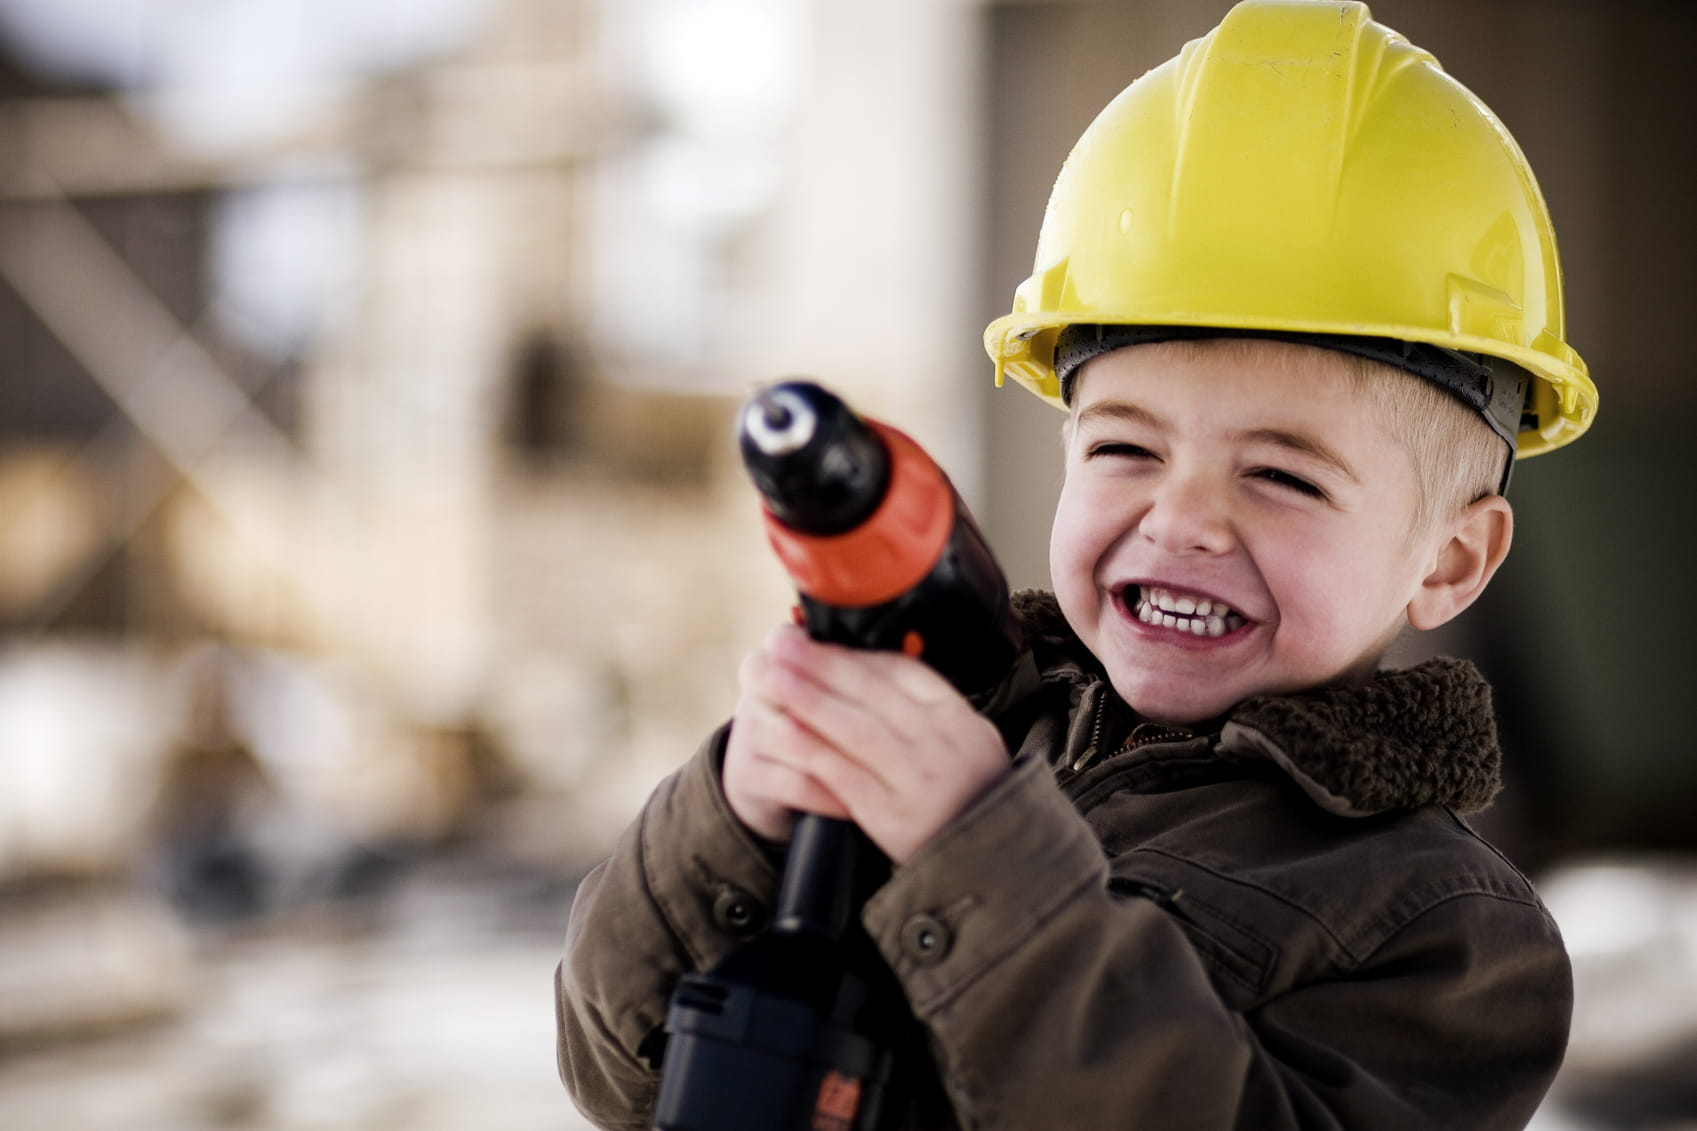 From cool yellow helmets to the bulldozer's beeps, construction sites are fantastic for building your child's understanding of the world. Photo by © Andrew Rich